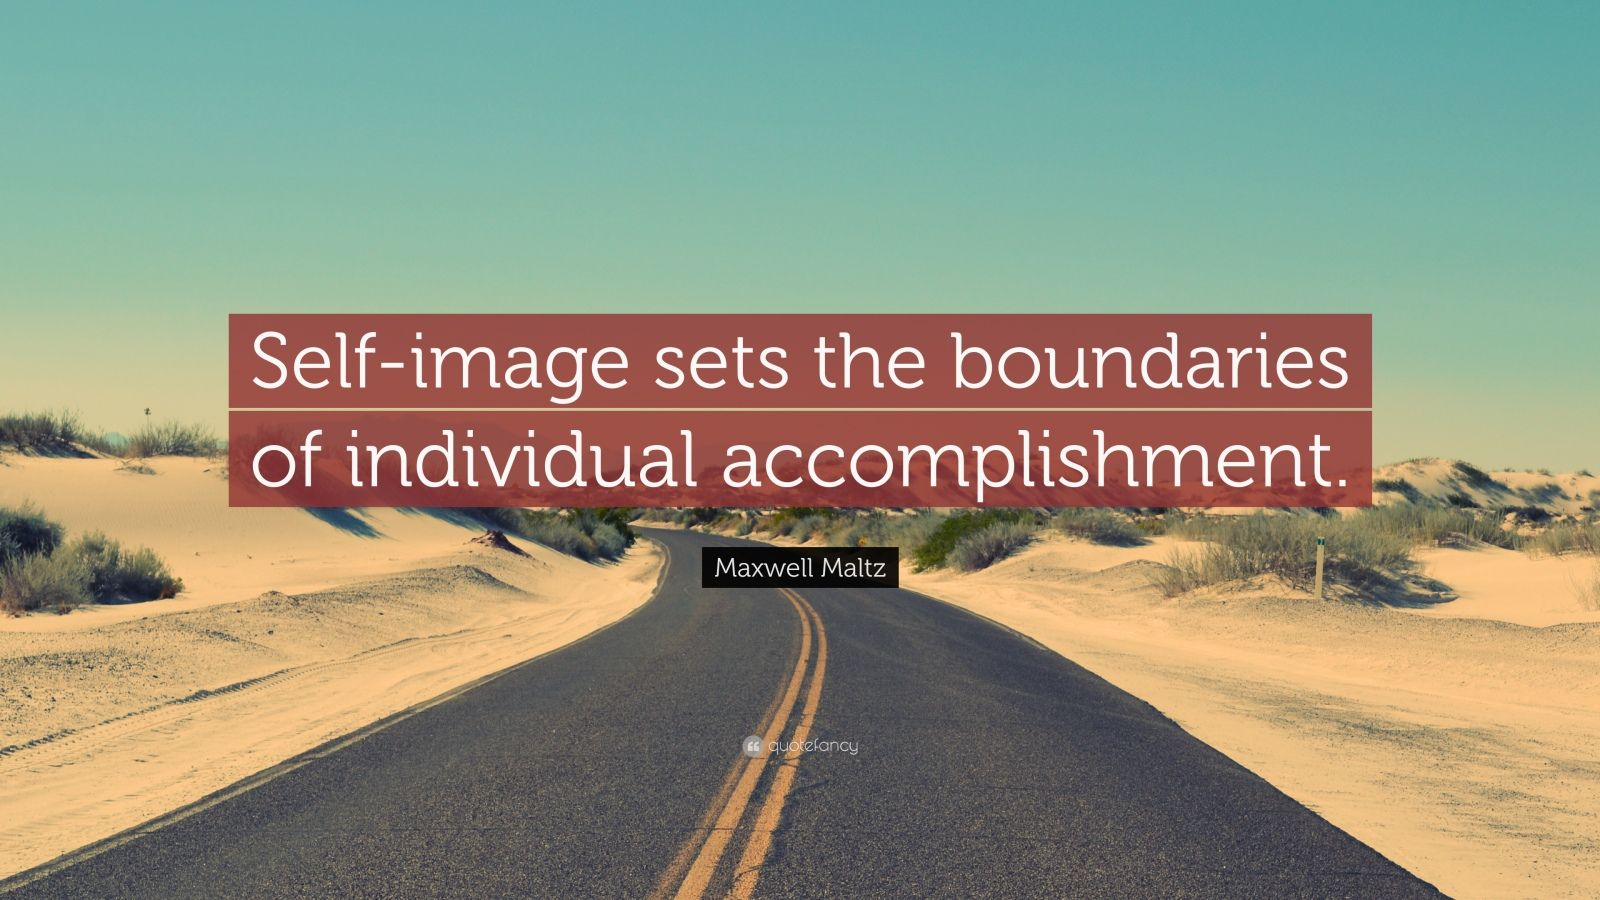 maxwell maltz quotes 98 quotefancy maxwell maltz quote self image sets the boundaries of individual accomplishment